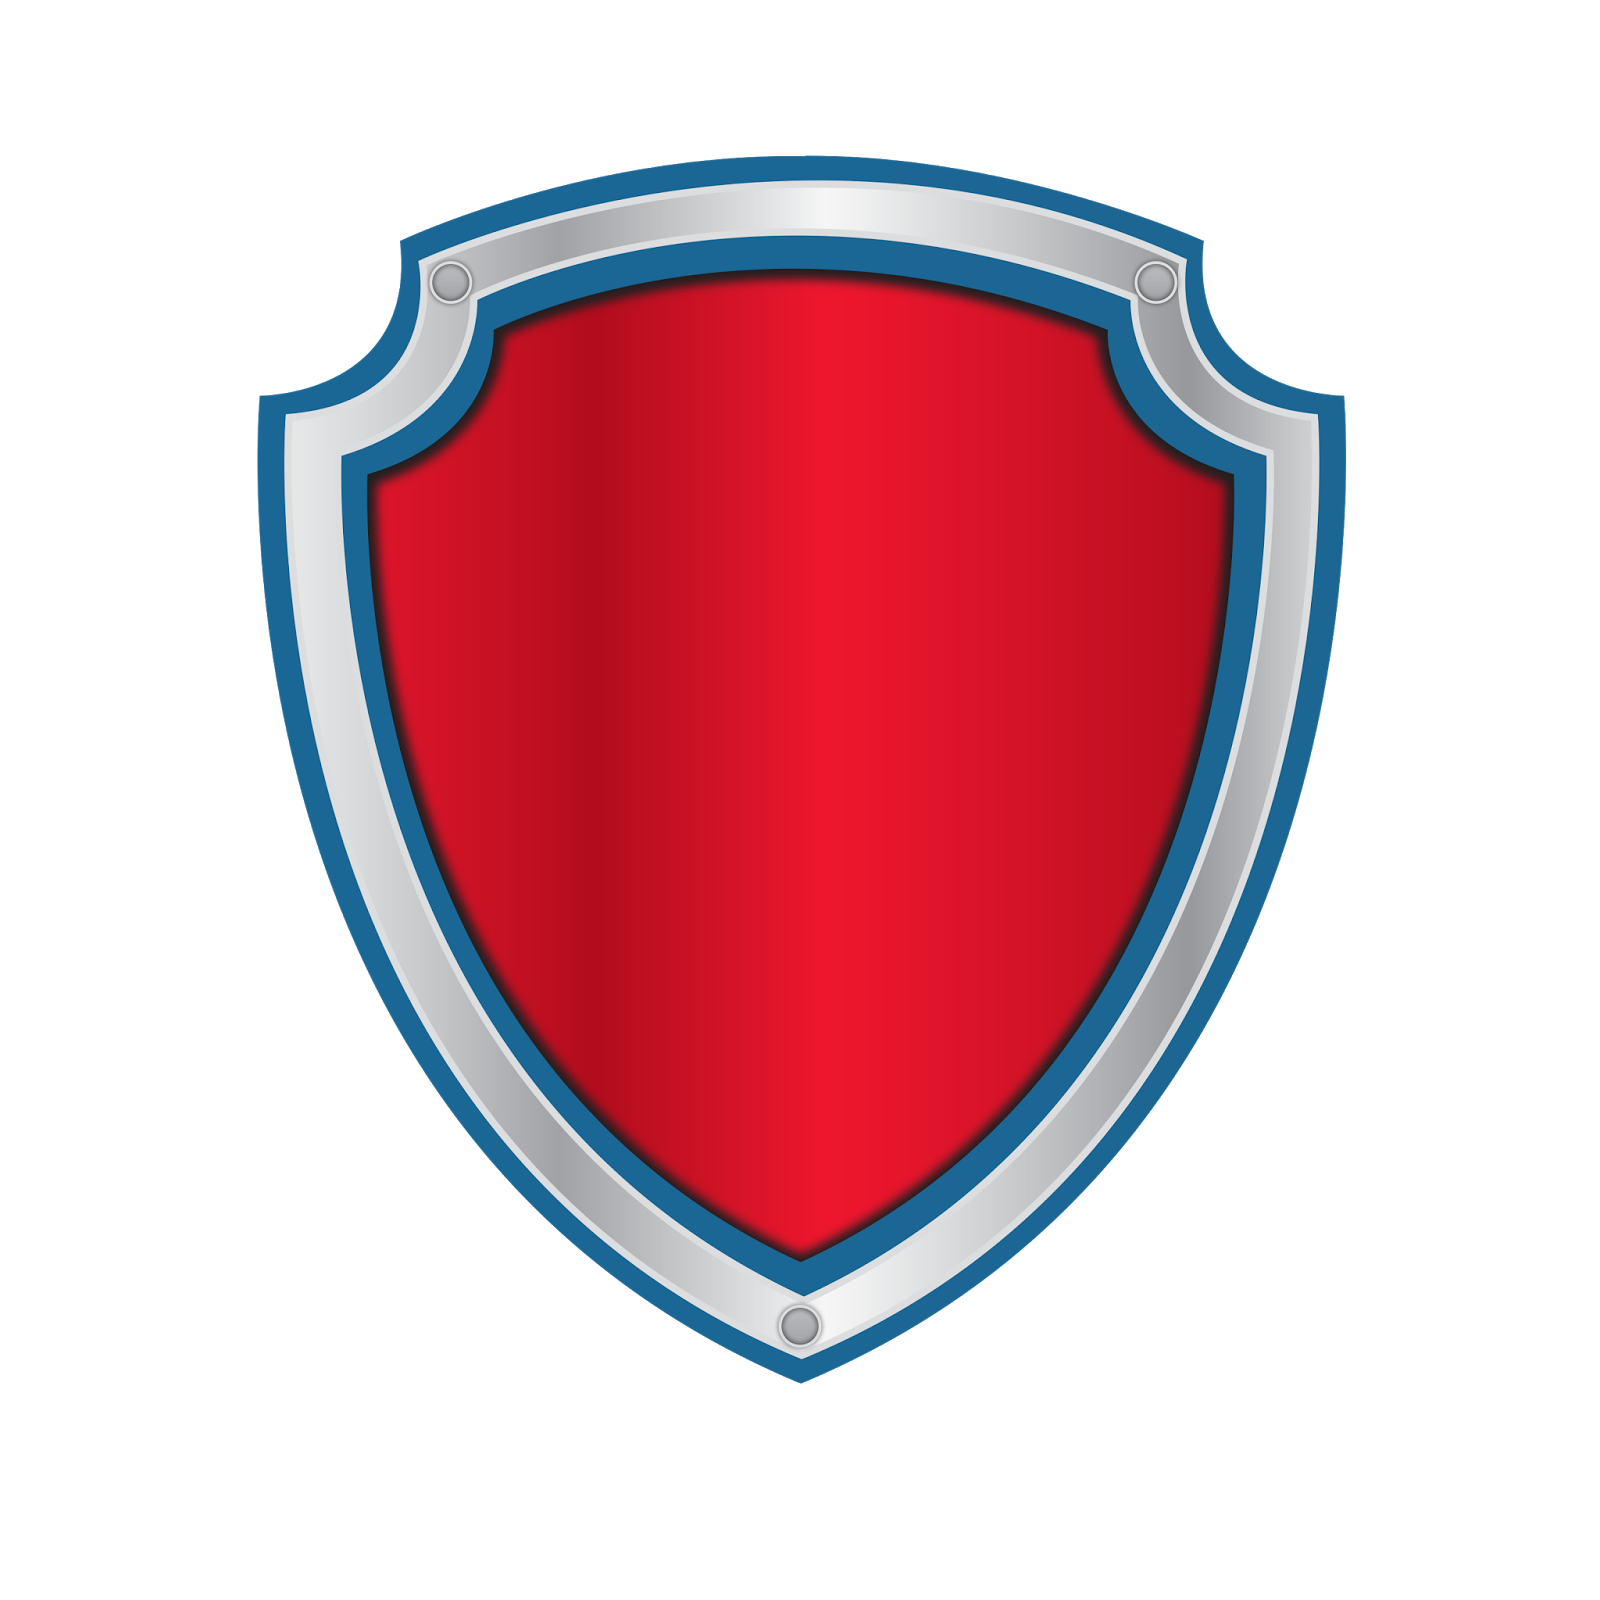 Paw patrol badges clipart jpg library library Paw Patrol Clipart at GetDrawings.com | Free for personal use Paw ... jpg library library